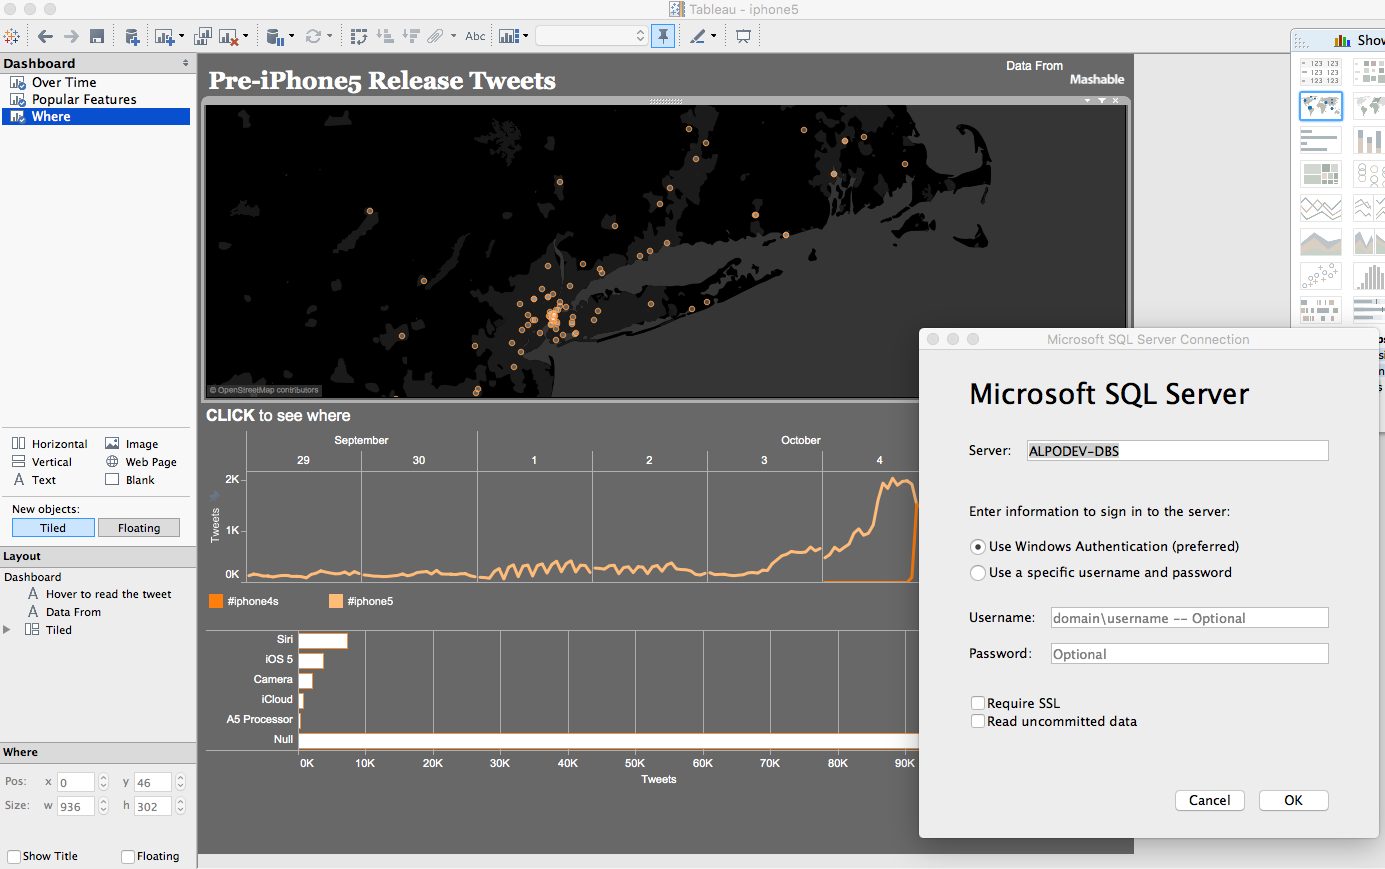 Tableau iPhone Release Dashboard